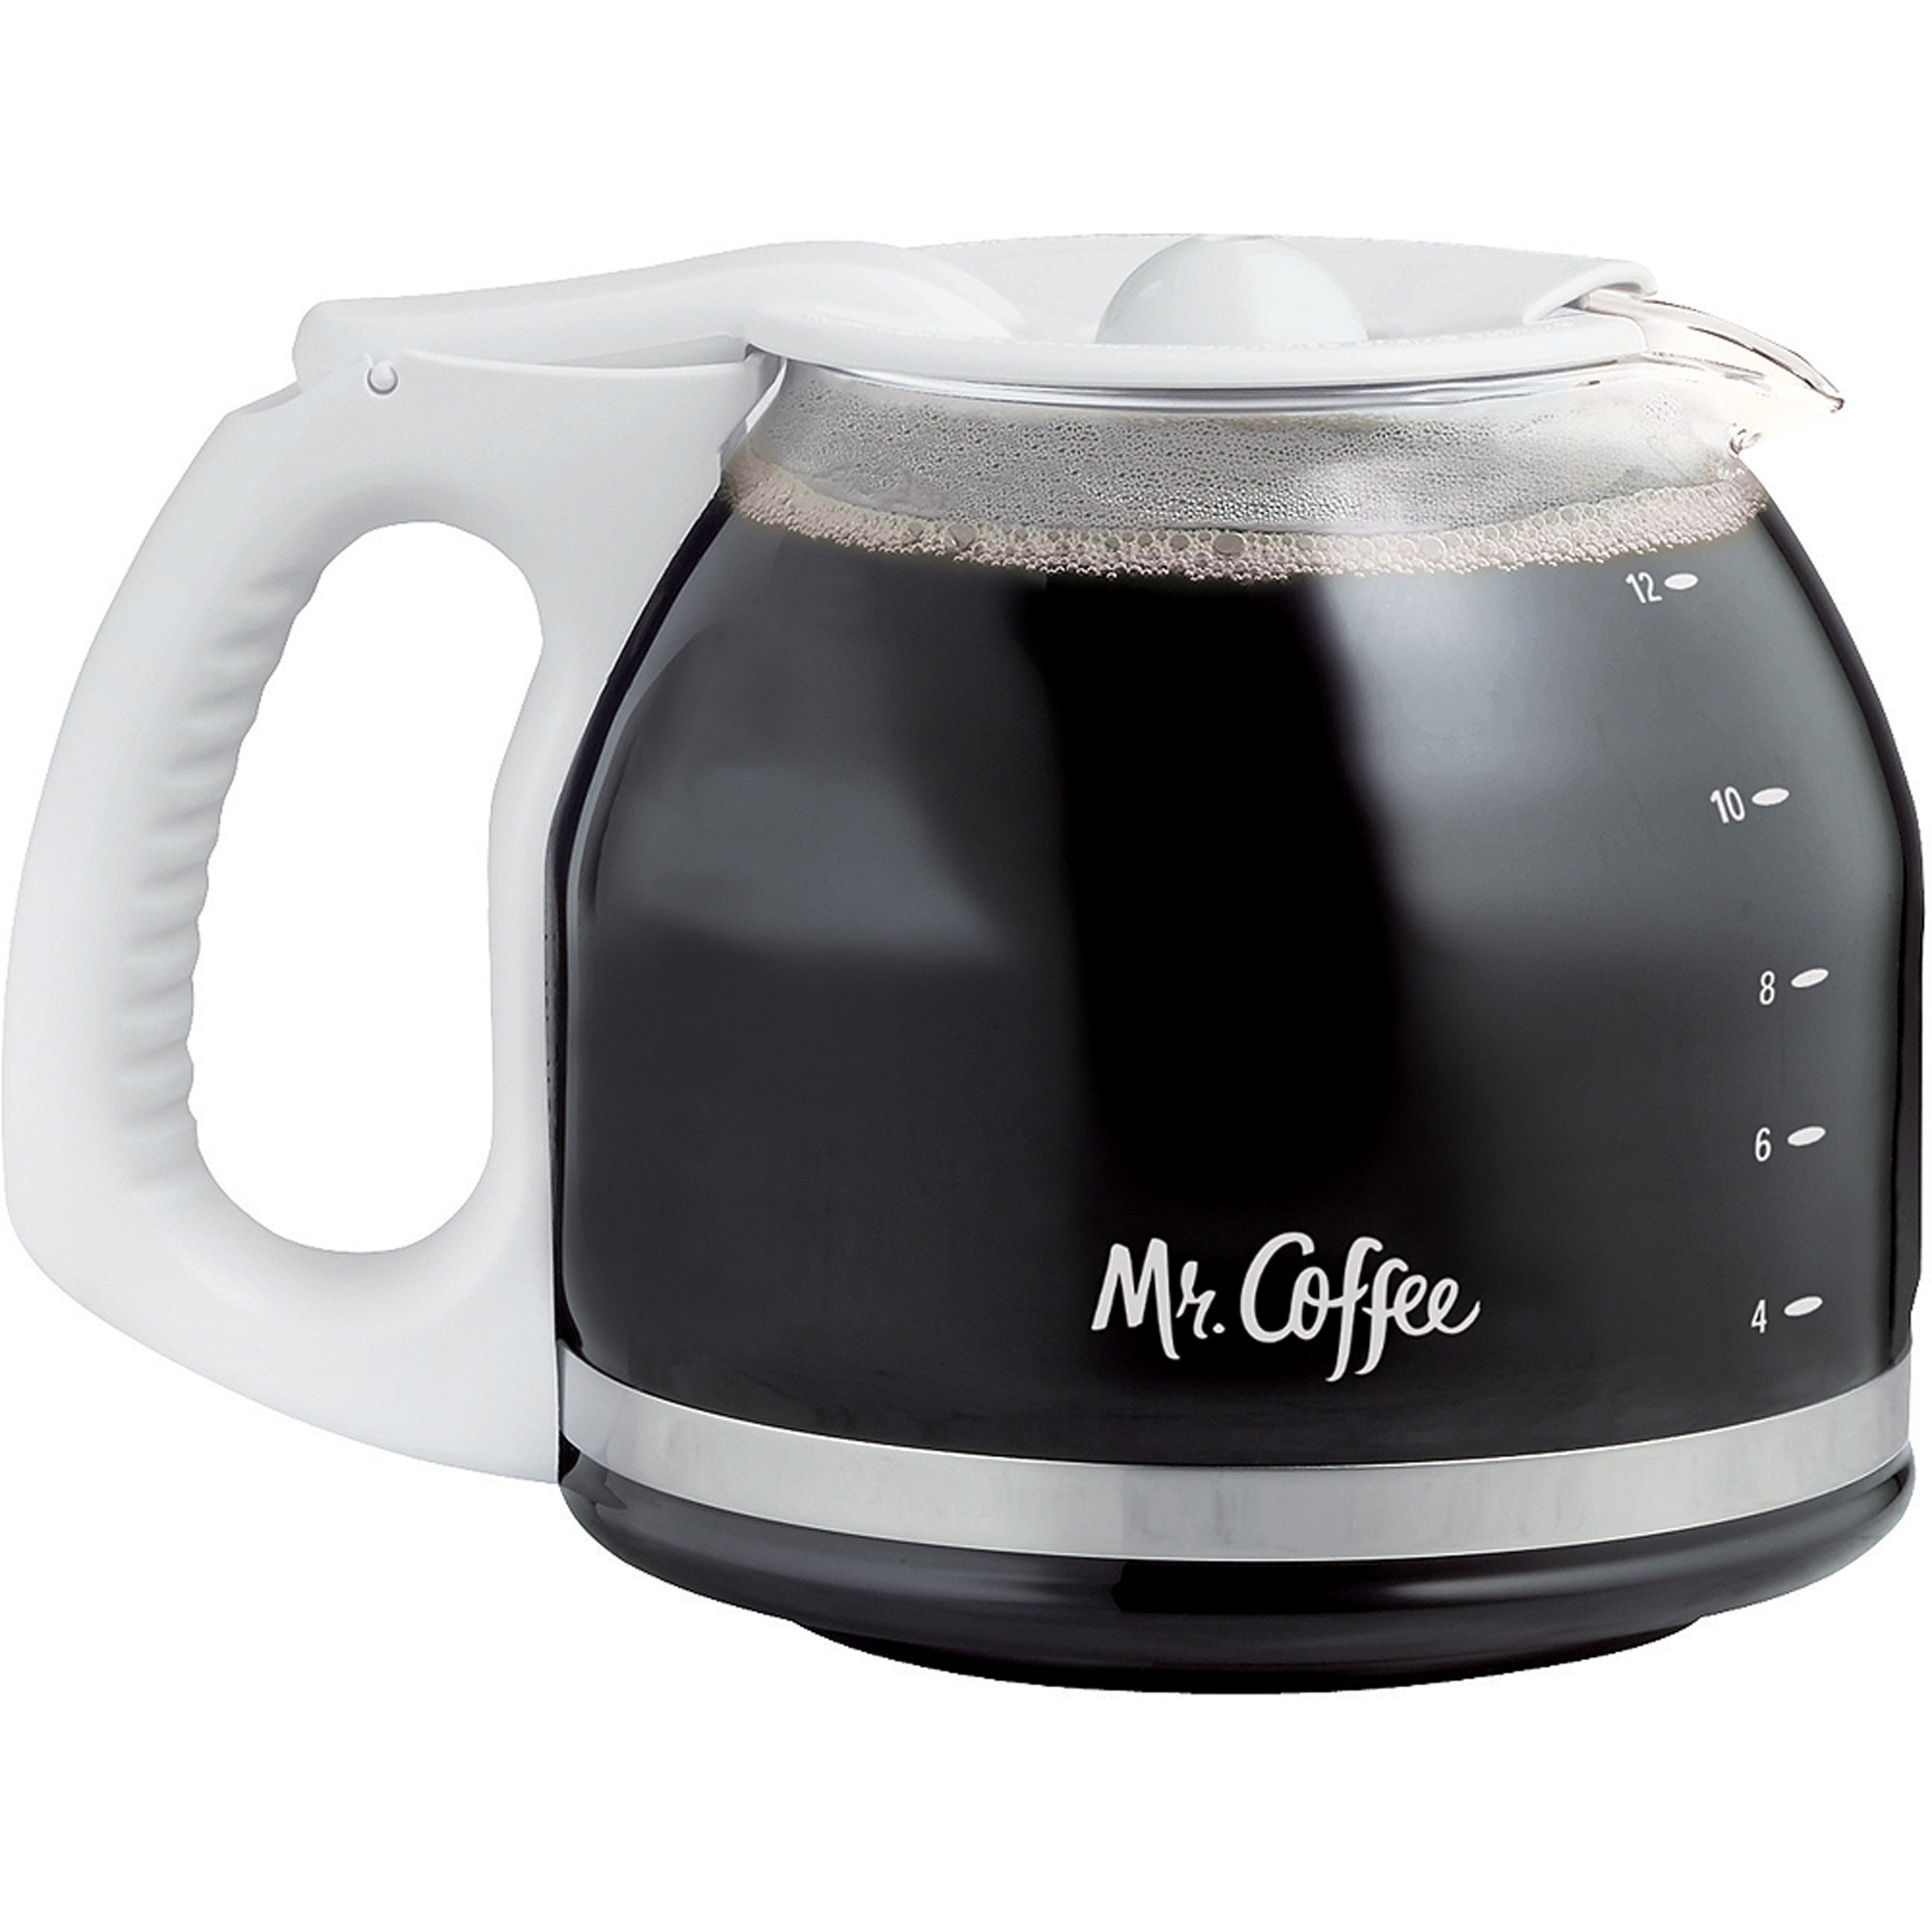 Mr. Coffee 12-Cup Replacement Decanter, Ergonomic, PLD13-1